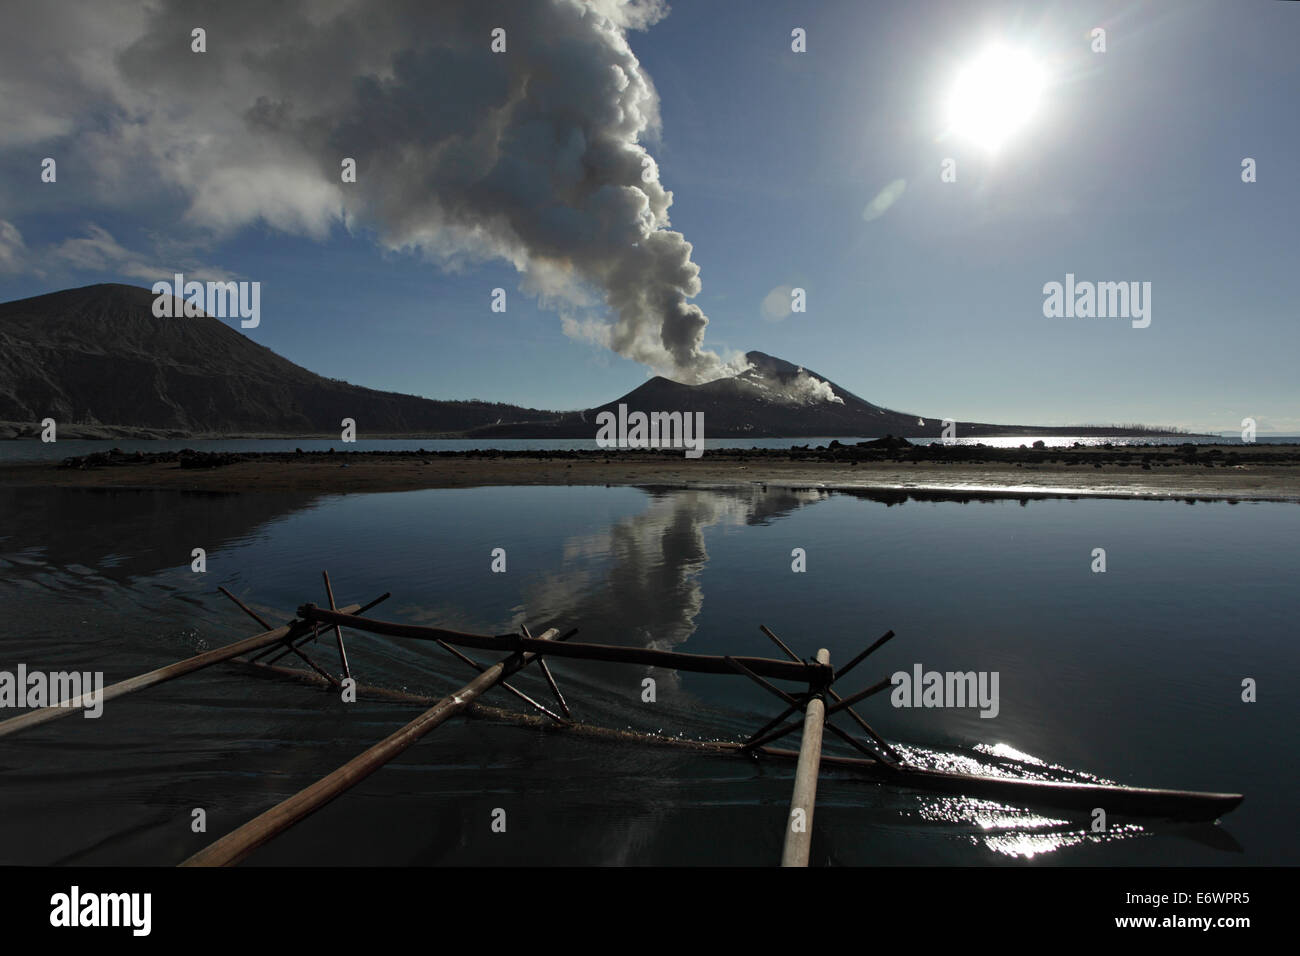 On the way to work. Every day, Egg hunters need to paddle across from Matupit to the volcano to dig for eggs. Tavurvur - Stock Image